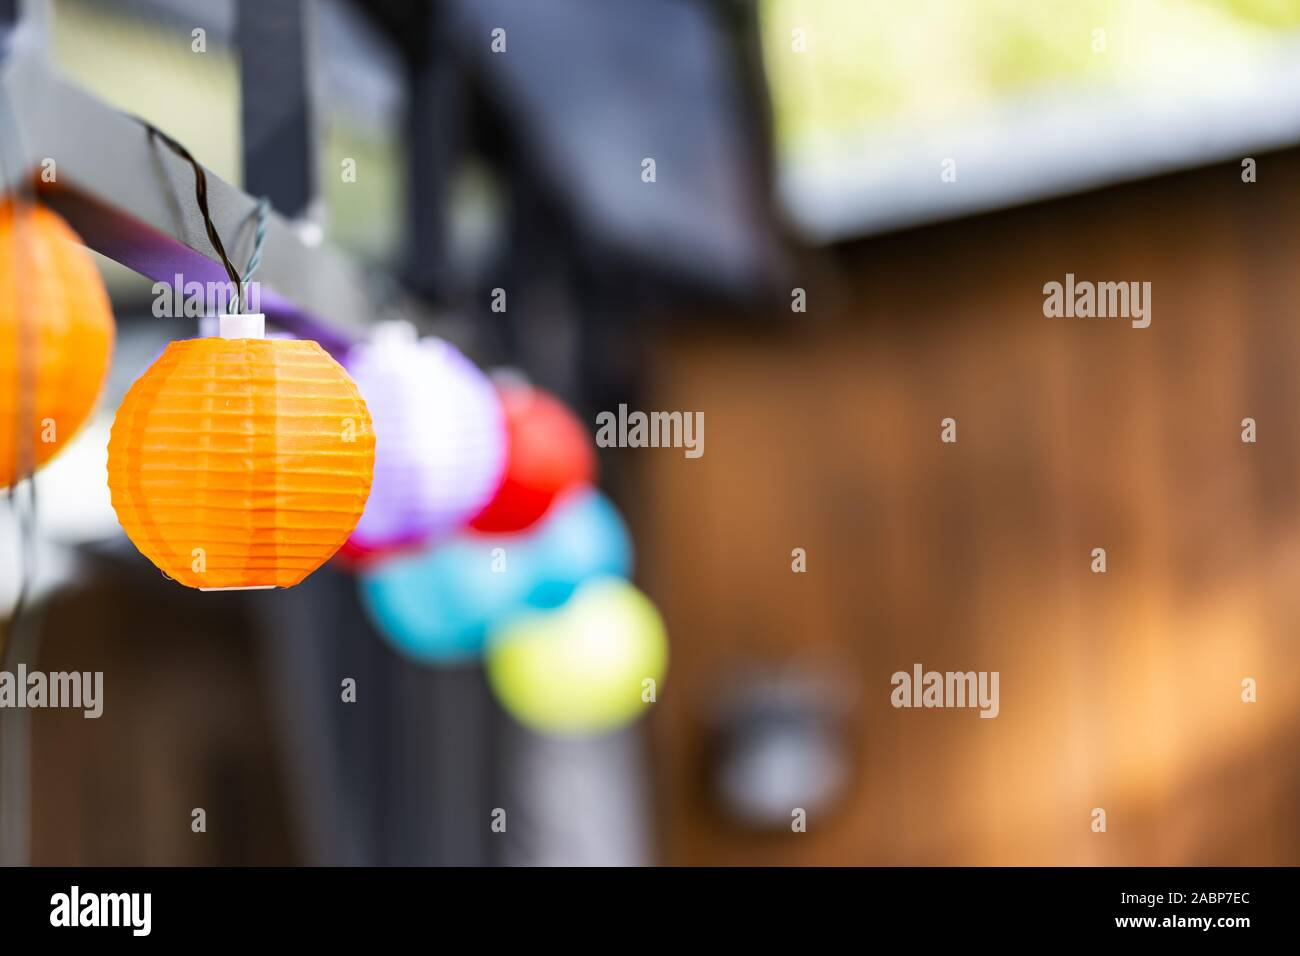 Little colorful lampion lights hanging on a pavilion in a garden on a sunny summer day. Cozy Chairs and Table standing underneath it. Stock Photo